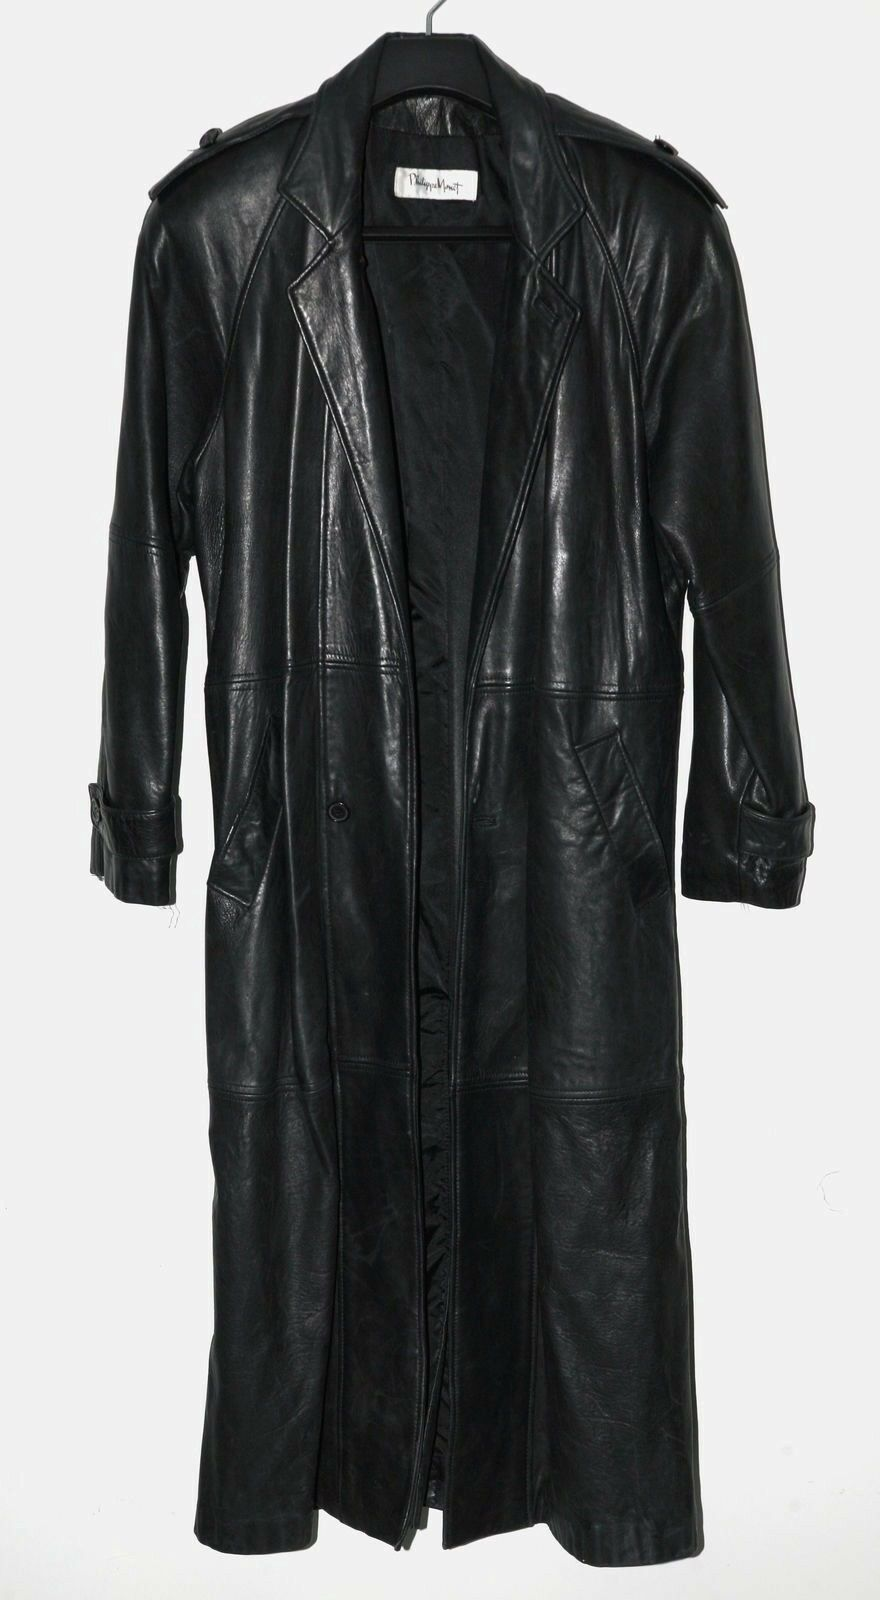 WOMENS PHILIPPE MONET LEATHER  COAT. SIZE 36.. BLK. RARE VINTAGE FIND